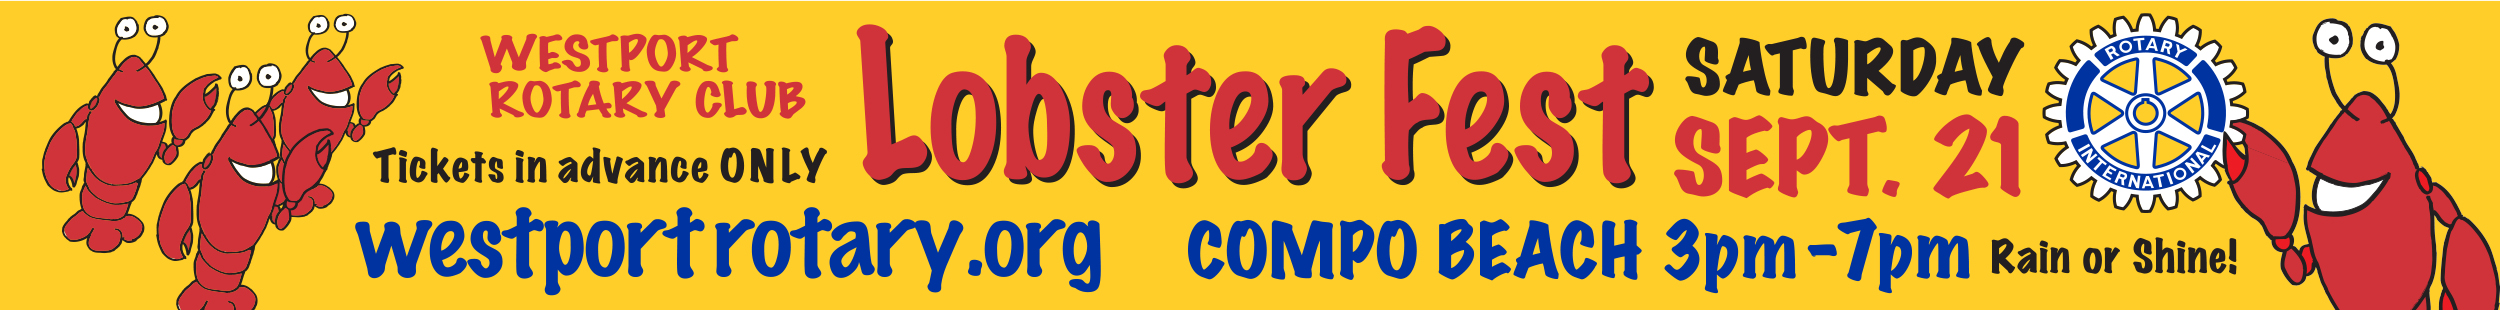 For Volunteer questions please contact   Susie Shuck    REMINDER:  Volunteers are expected to purchase a ticket to LobsterFest. Tickets can be purchased from any Westport Rotary member at $55/pp. Children's Tickets are $10/pp. Tickets purchased online are $60/pp.  VOLUNTEER SHIFTS:  · Friday (Sept. 20) p.m. set up from 3pm to 6:30pm.  · Saturday (Sept. 21) morning set up from 9a.m. to 1pm.  · Saturday (Sept.21) event – Shifts vary starting at 2 p.m. to 7:30p.m.  · Sunday Morning (Sept. 22) after event clean up from 9am to 12noon.